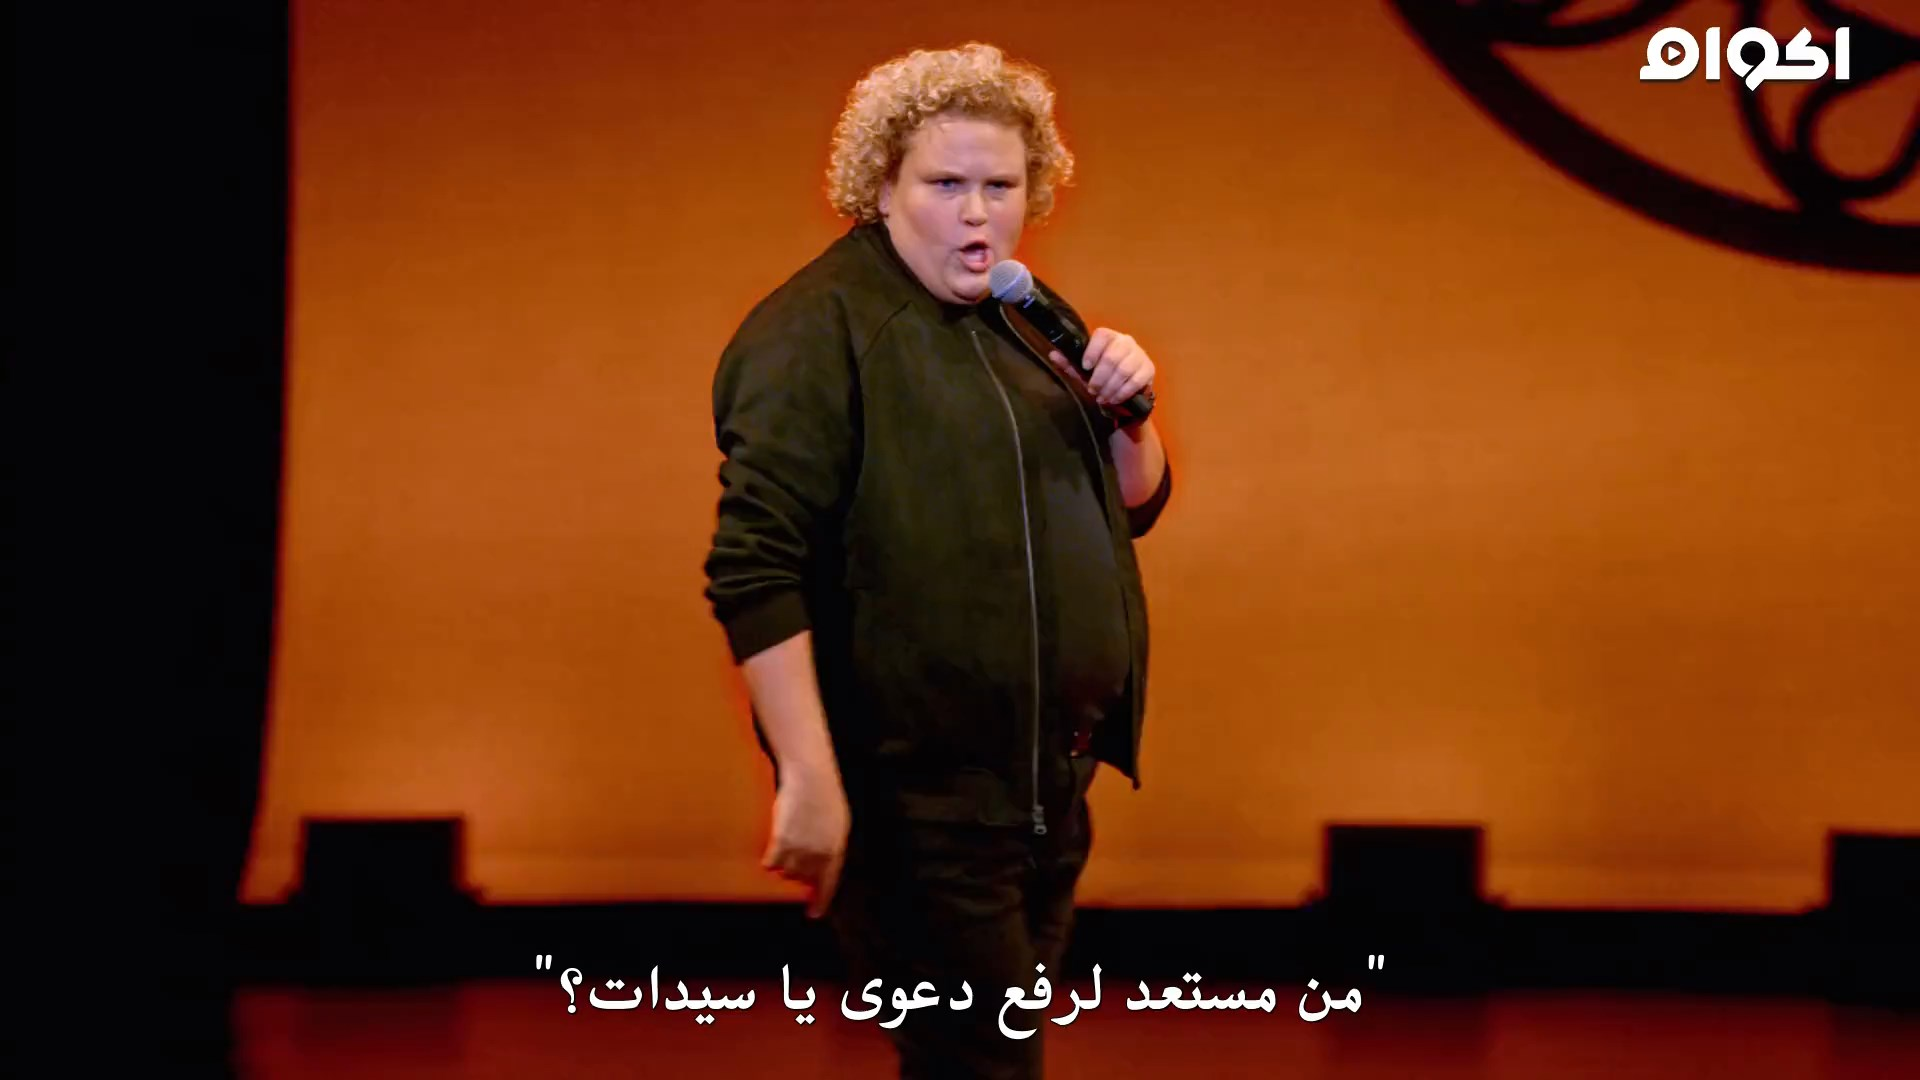 Fortune Feimster: Sweet & Salty,Fortune Feimster: Sweet & Salty   2020,Fortune Feimster: Sweet & Salty   مترجم,Fortune Feimster,ستاند اب,ستاند اب كوميدي